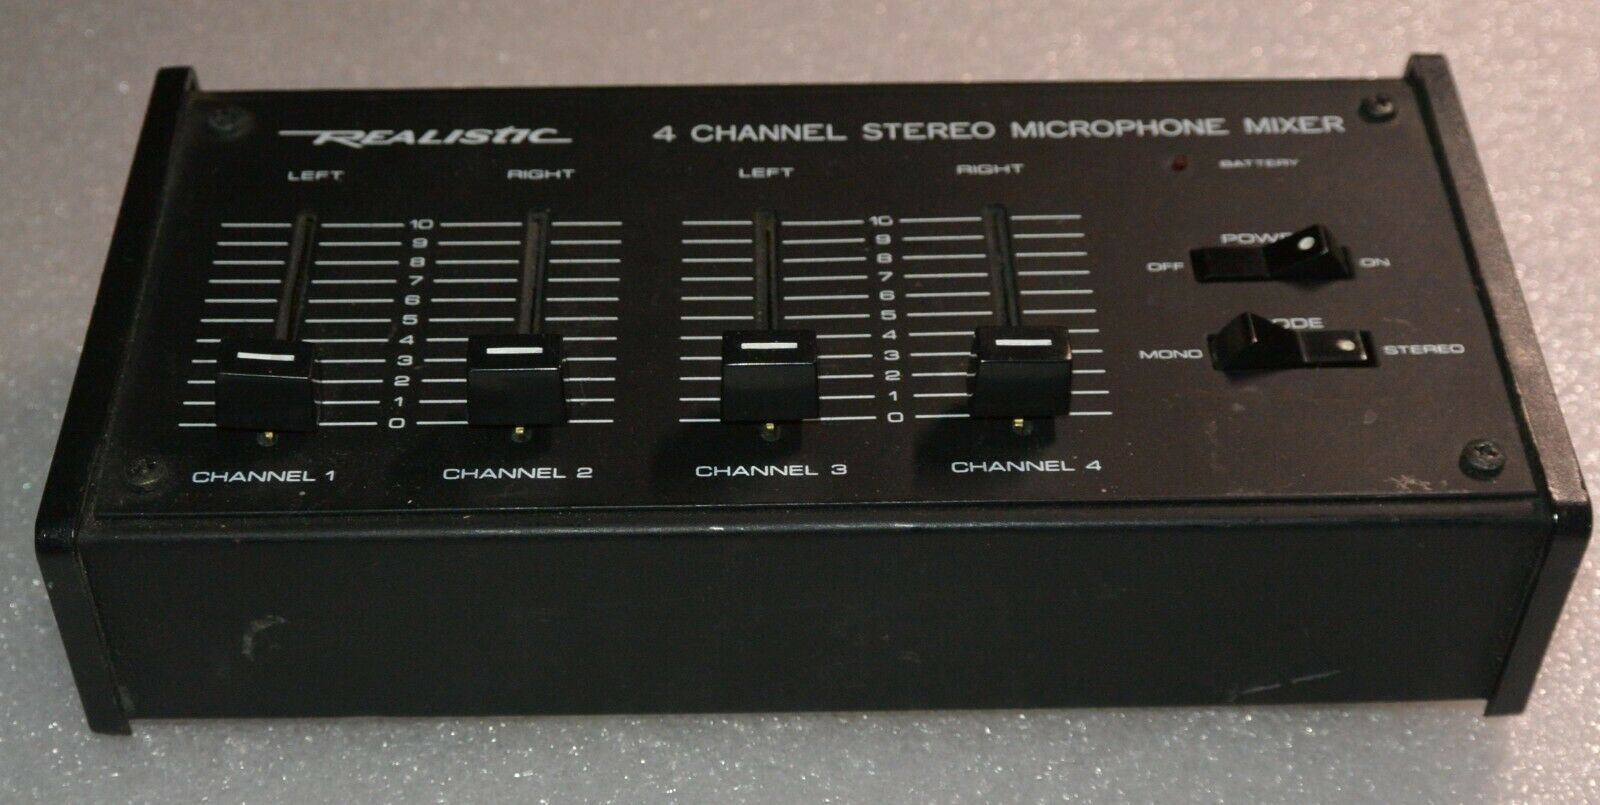 Realistic Radio Shack 4 channel Stereo Microphone Mixer 32-1105. Buy it now for 69.99